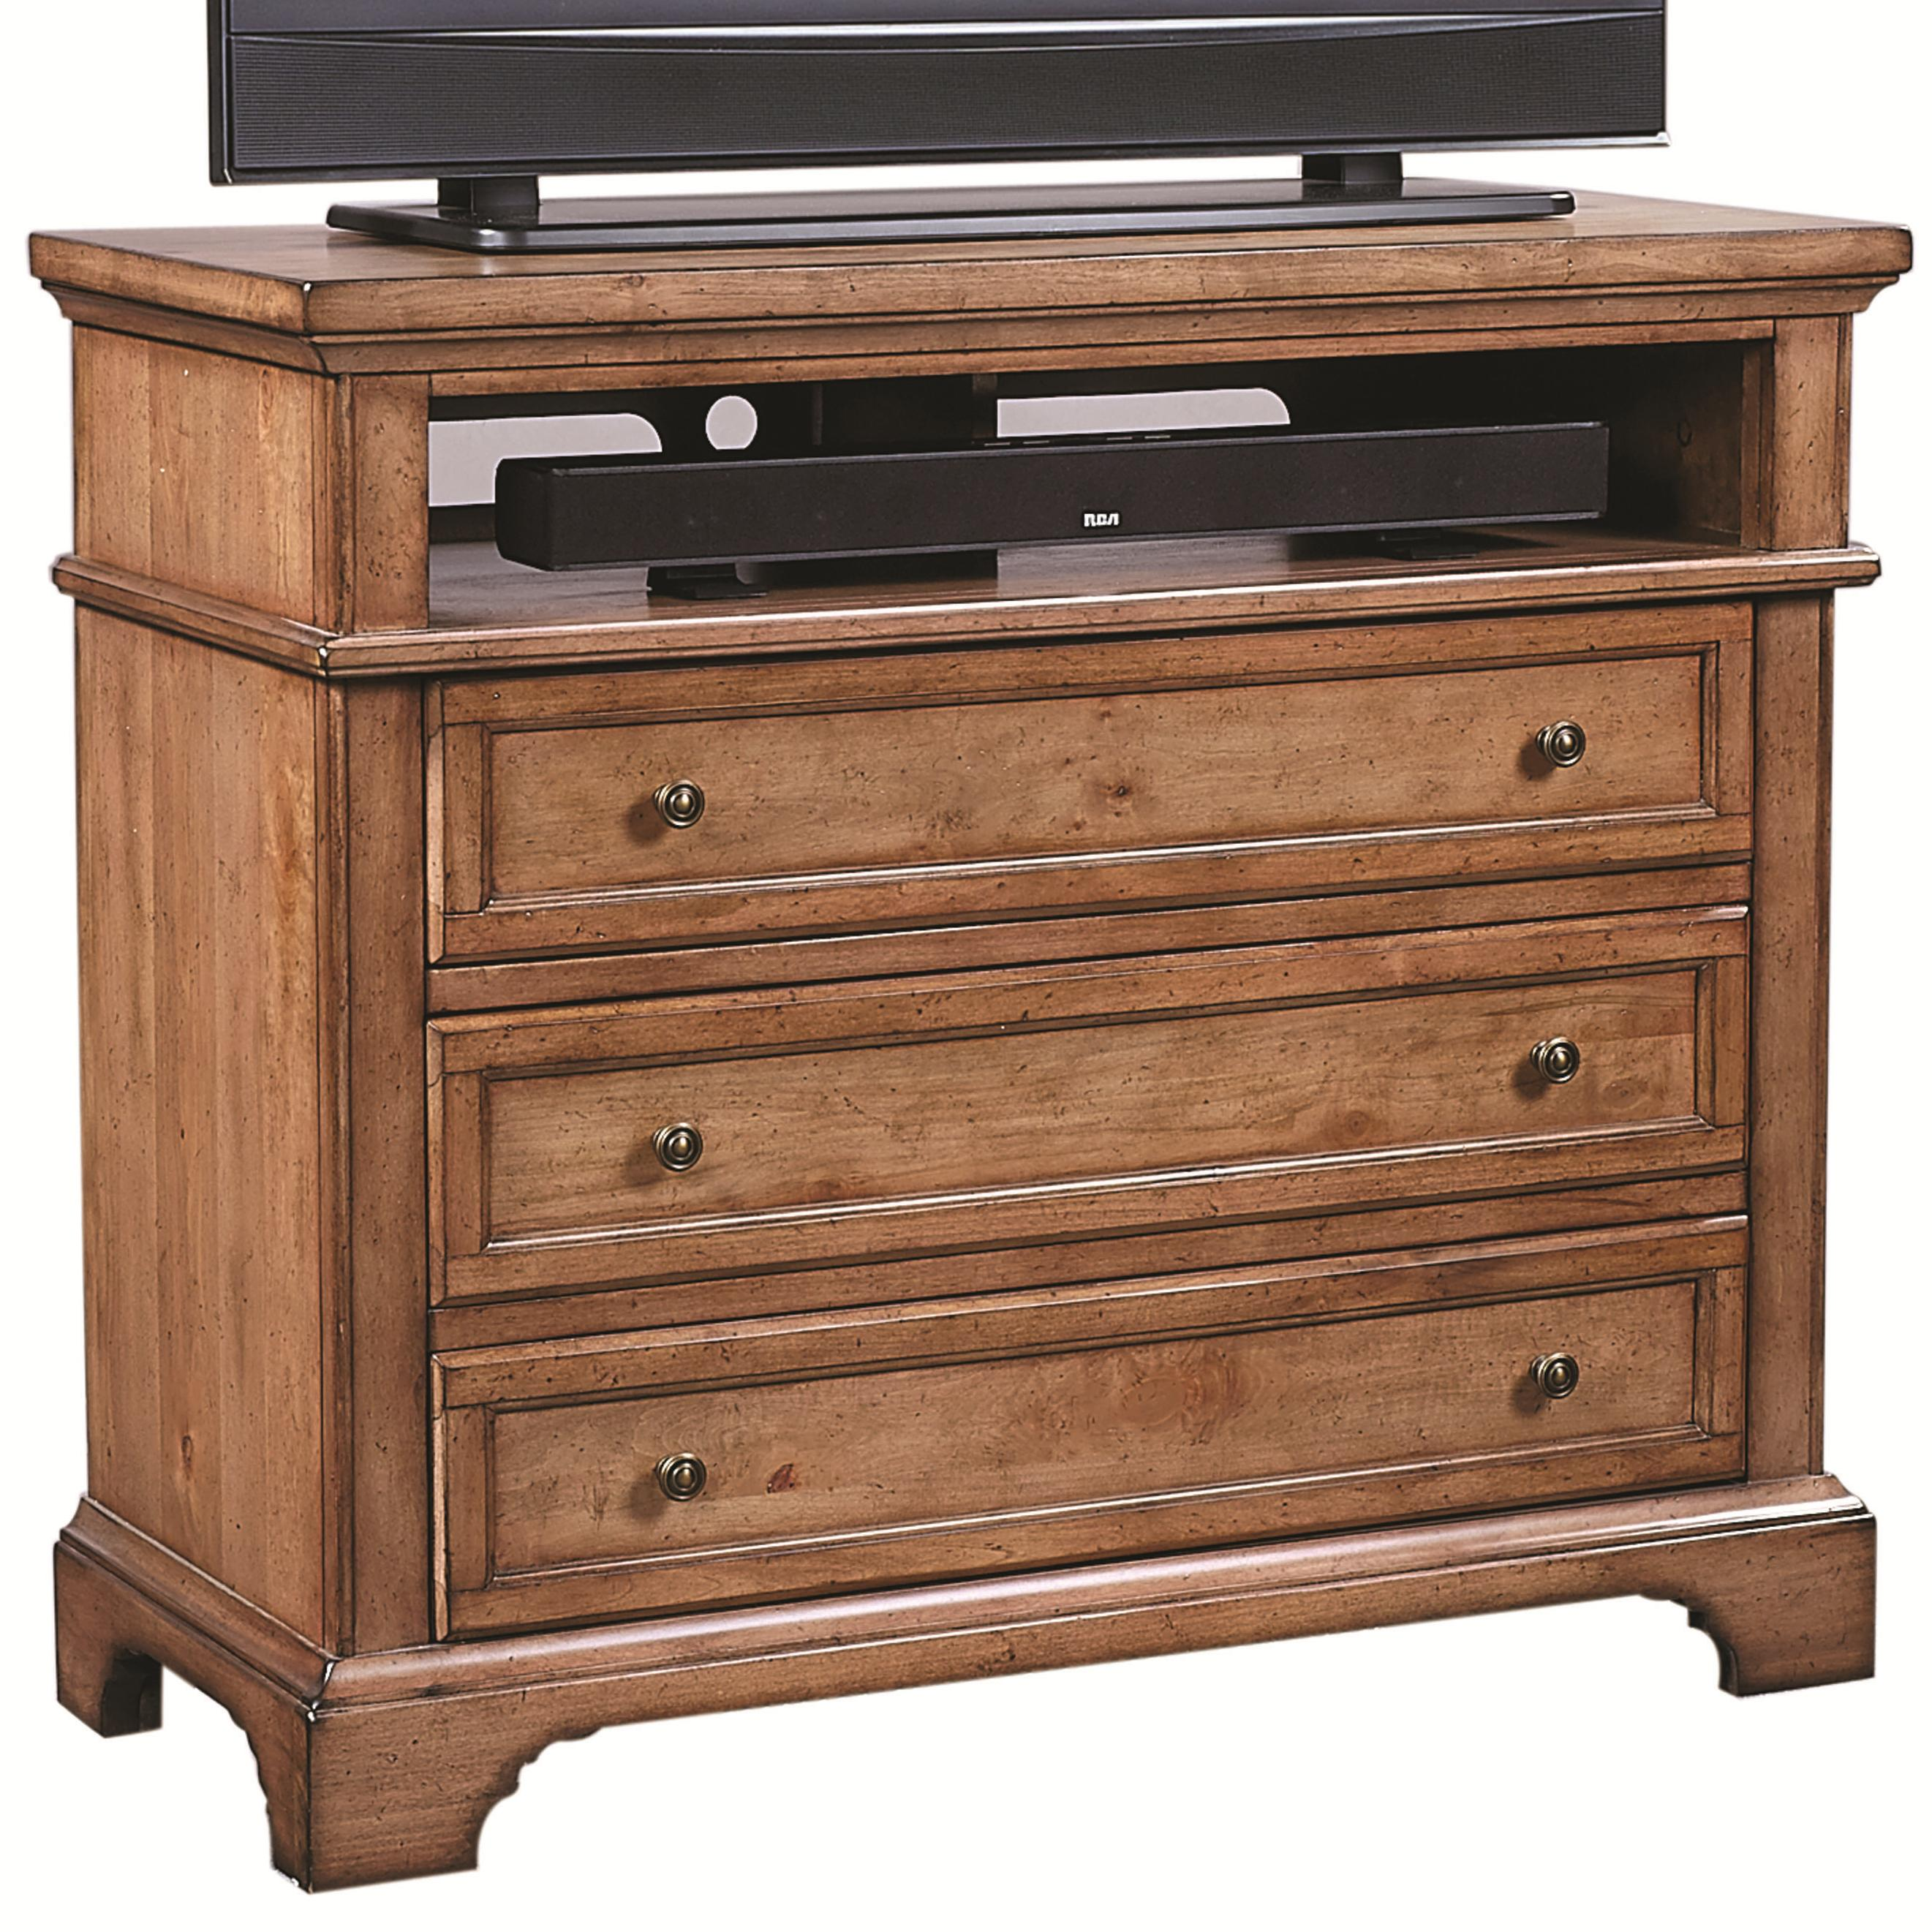 Aspenhome Alder Creek Liv360 Entertainment Chest - Item Number: I09-486